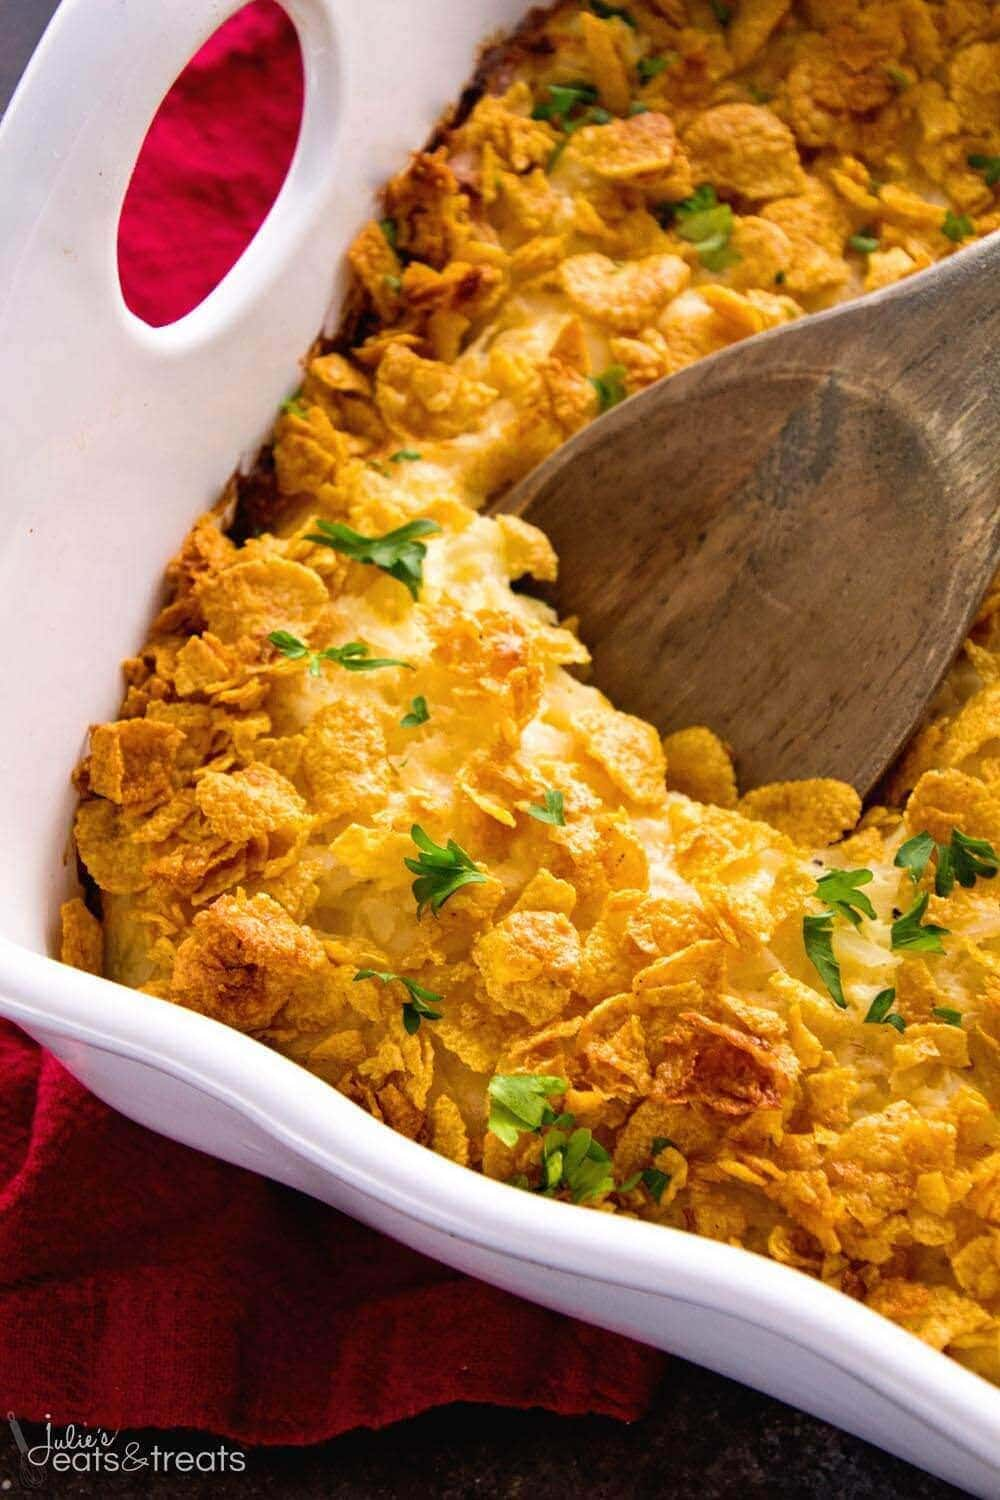 Cheesy Hash Brown Chicken Casserole ~ Your Favorite Cheesy Hash Brown Casserole In a Main Dish! Comforting Casserole Loaded with Hash Browns, Cheese, and Chicken Perfect for Dinner!